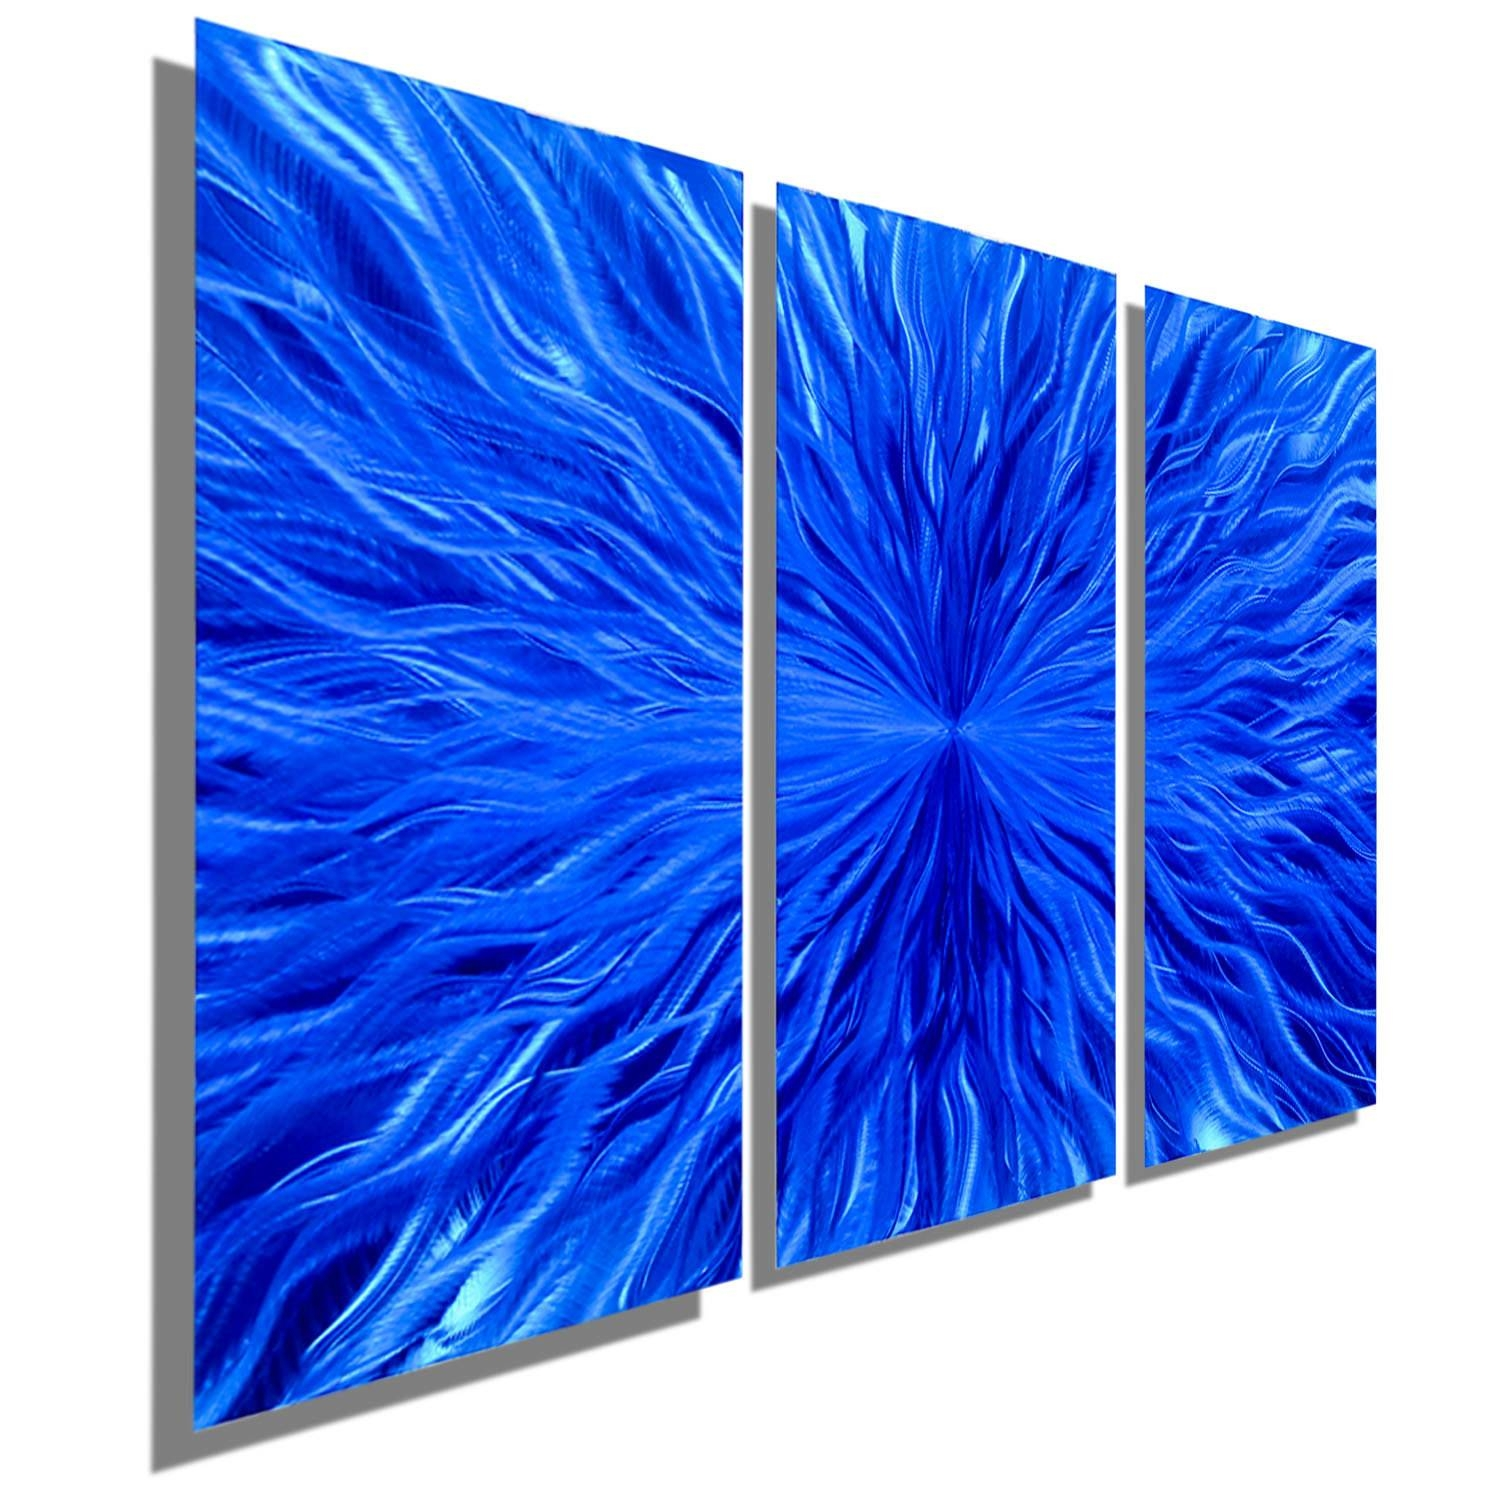 Multi Panel Contemporary Metal Wall Decor In Blue Modern Intended For Current Blue Metal Wall Art (View 15 of 20)